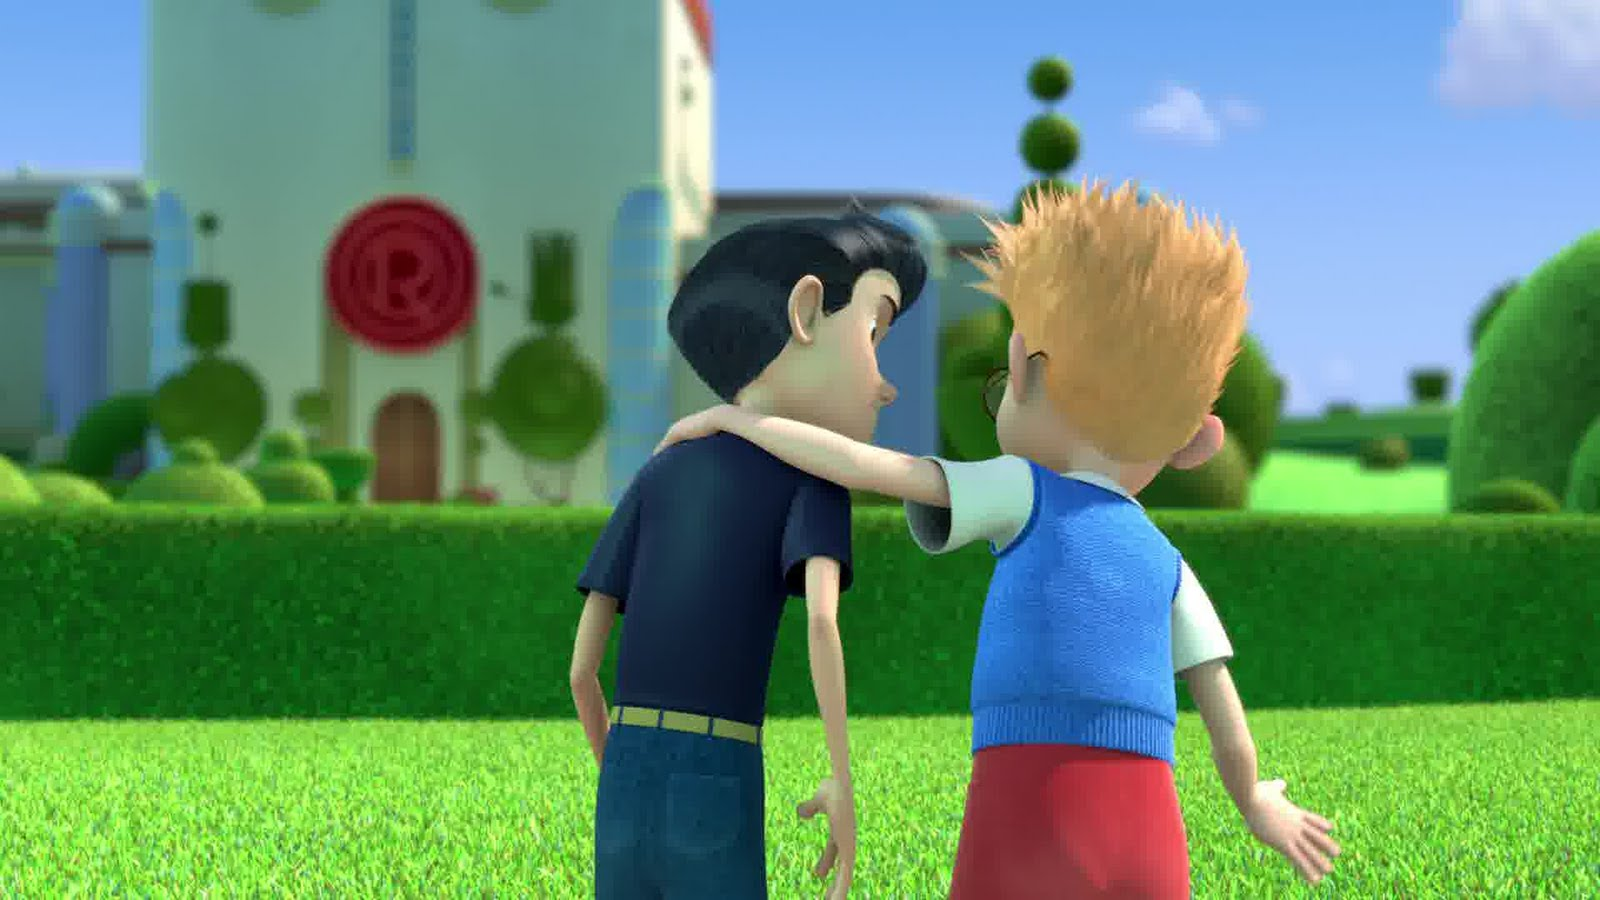 meet the robinsons ending part of sopranos